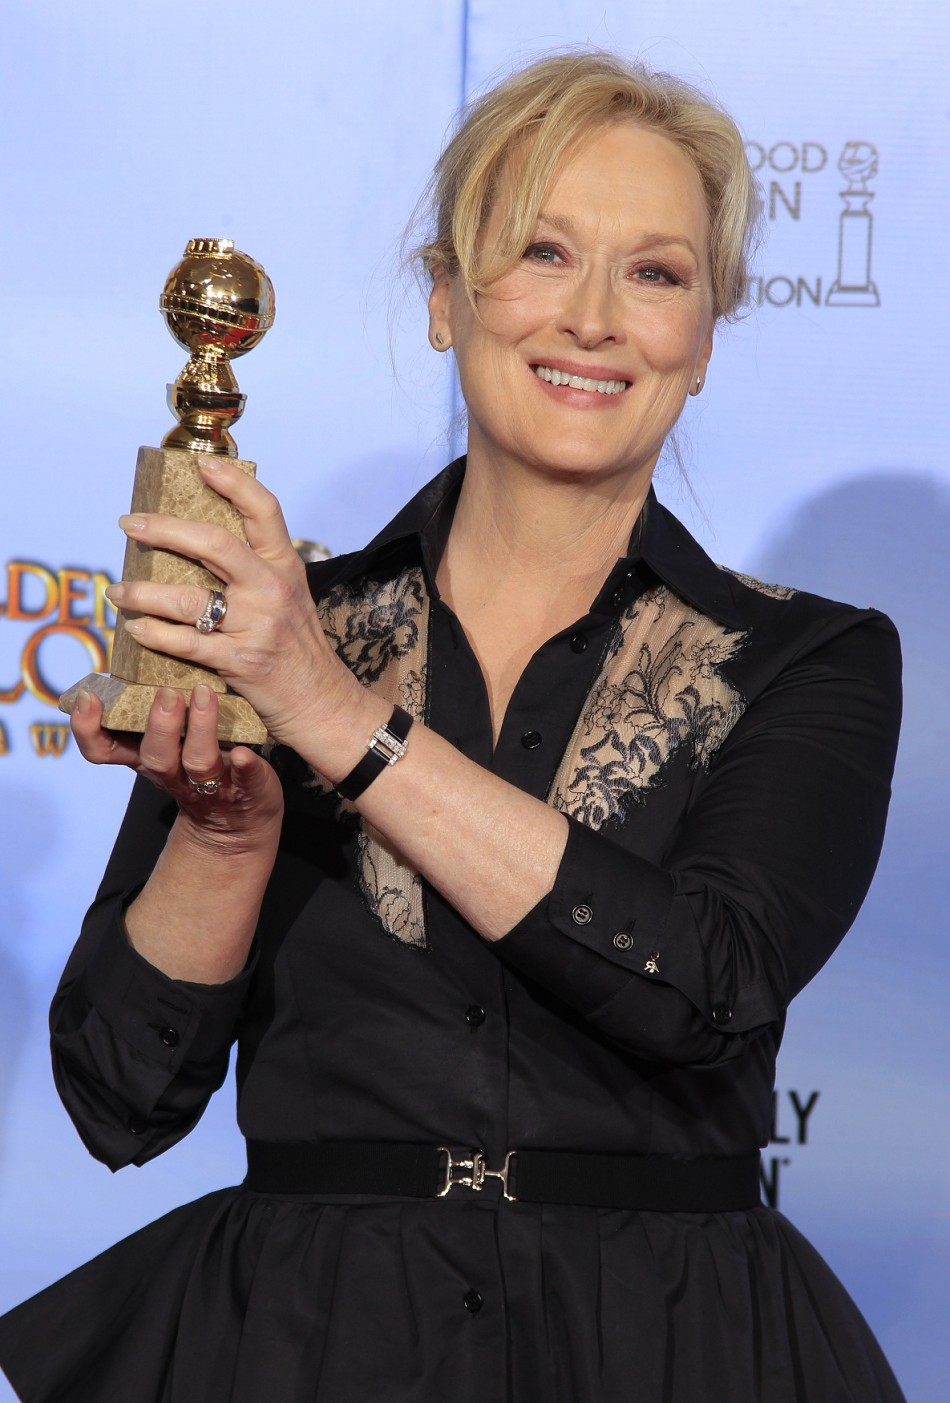 Meryl Streep, winner of best performance by an actress in a drama motion picture for her role in